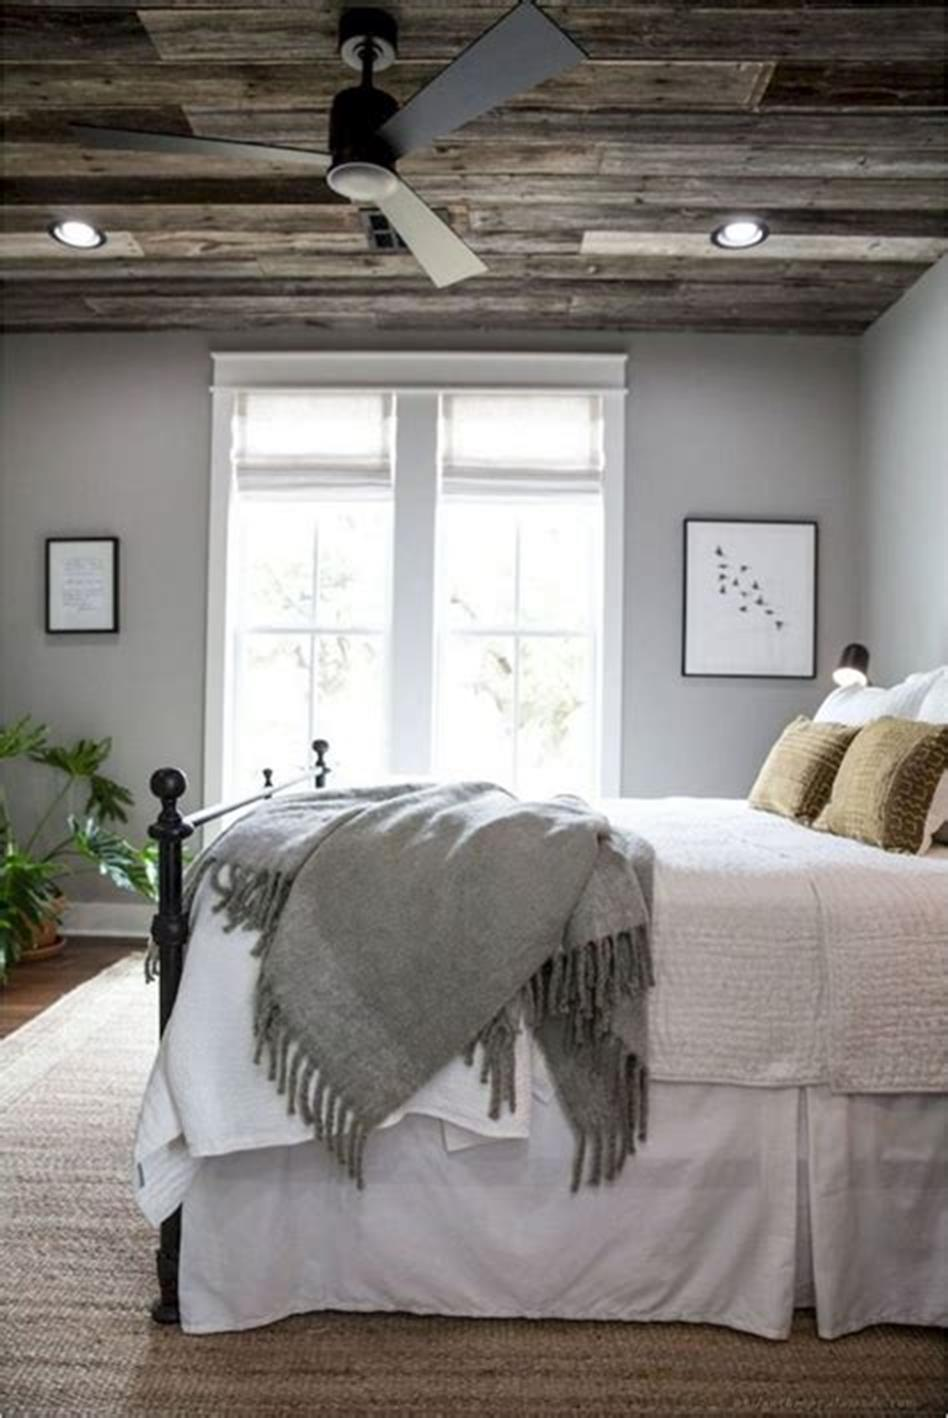 48 Stunning Farmhouse Master Bedroom Design Ideas 2019 20